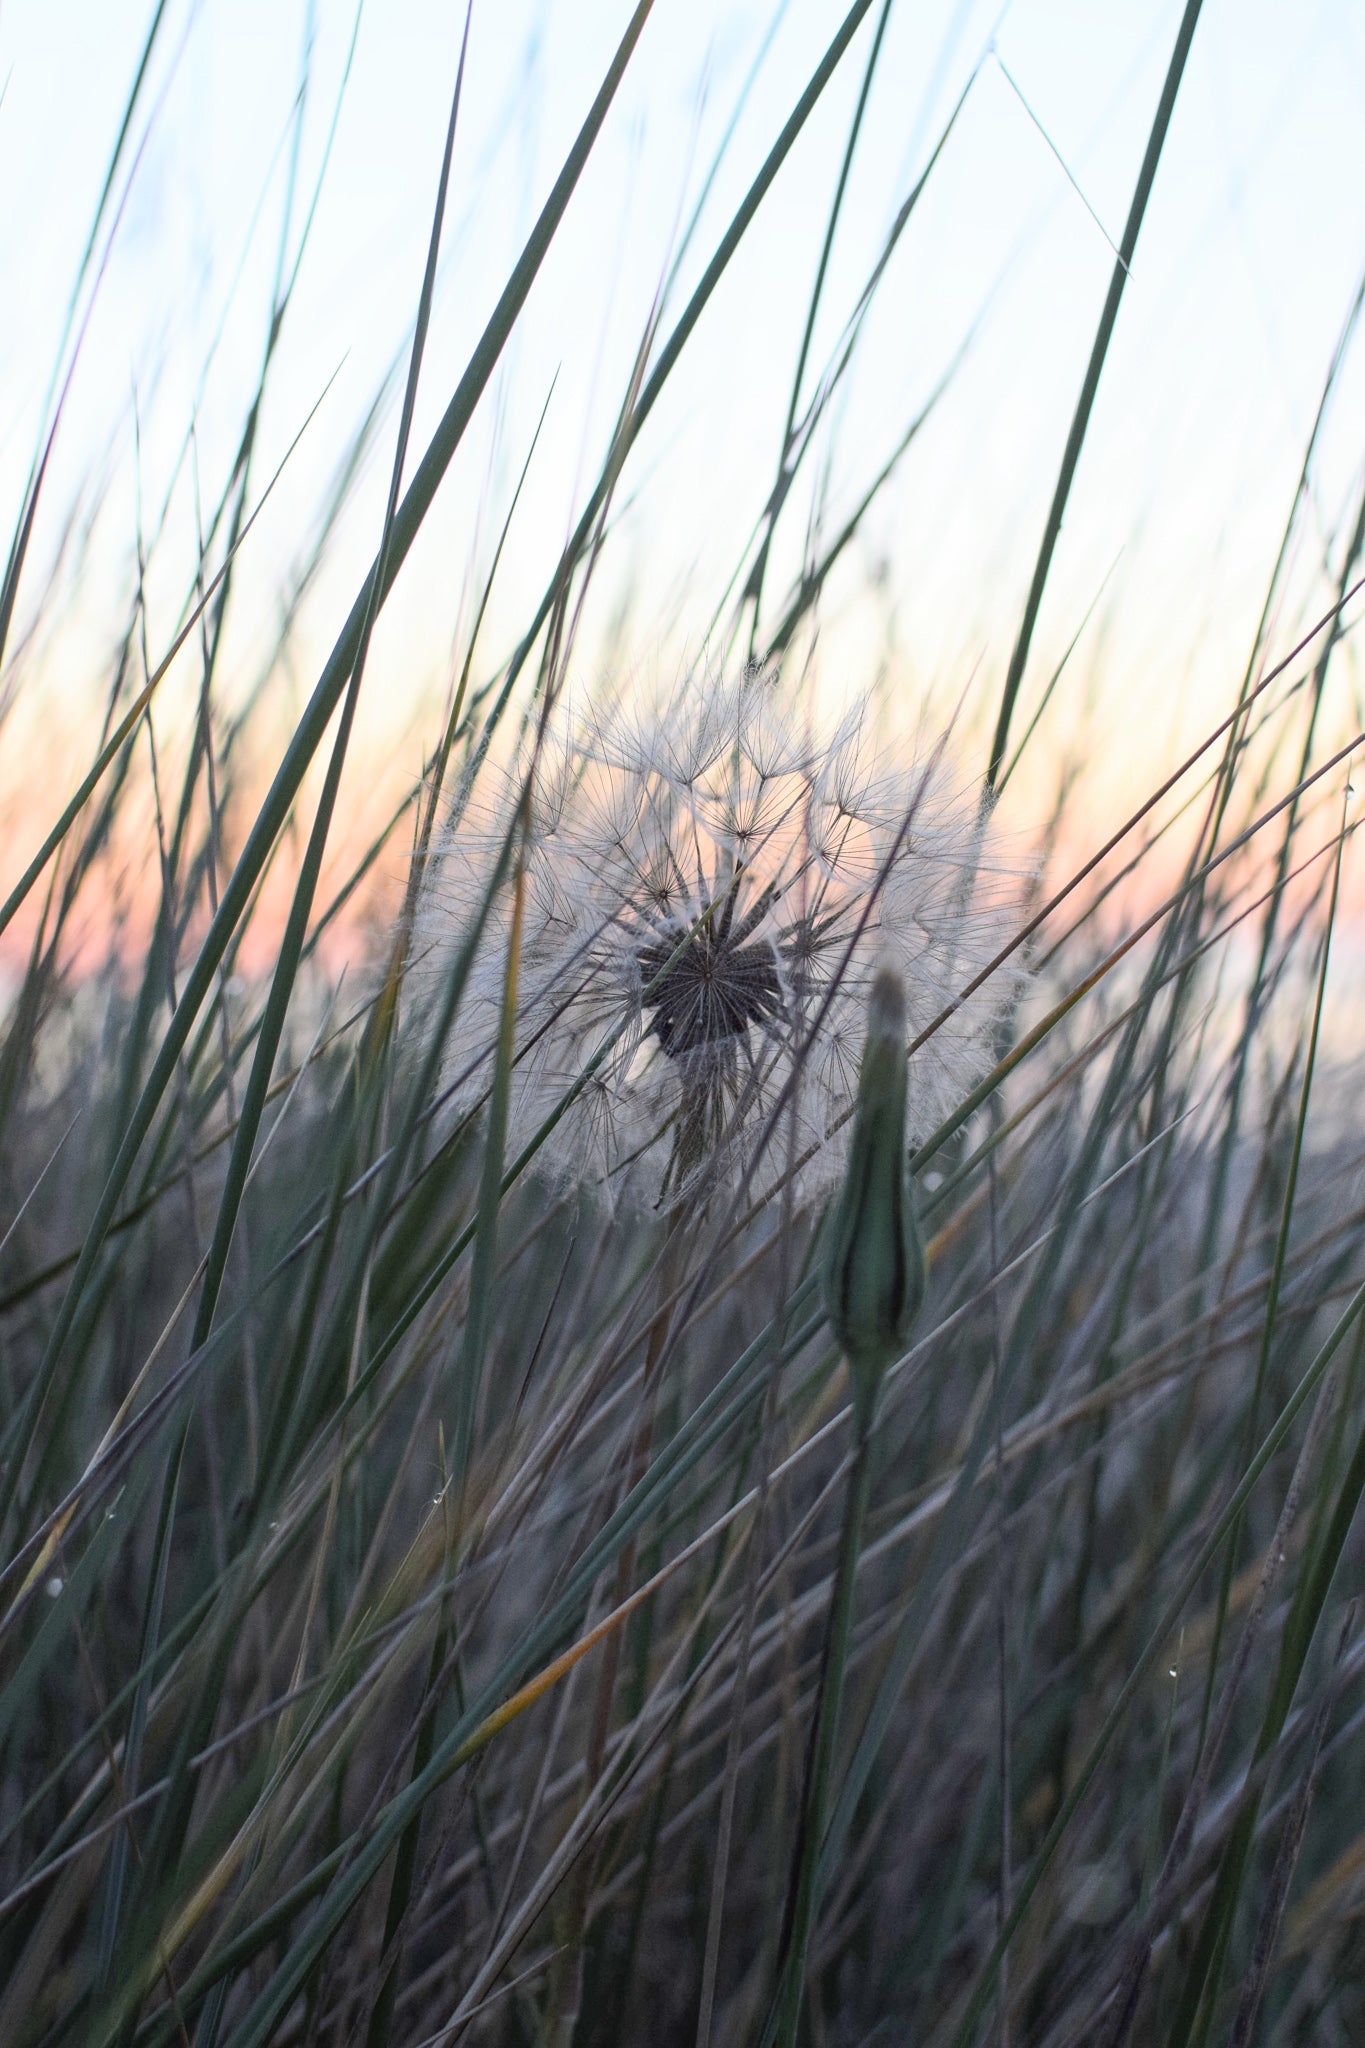 Goats Beard seed head in the sand dunes, Newton-by-the-sea, Northumberland